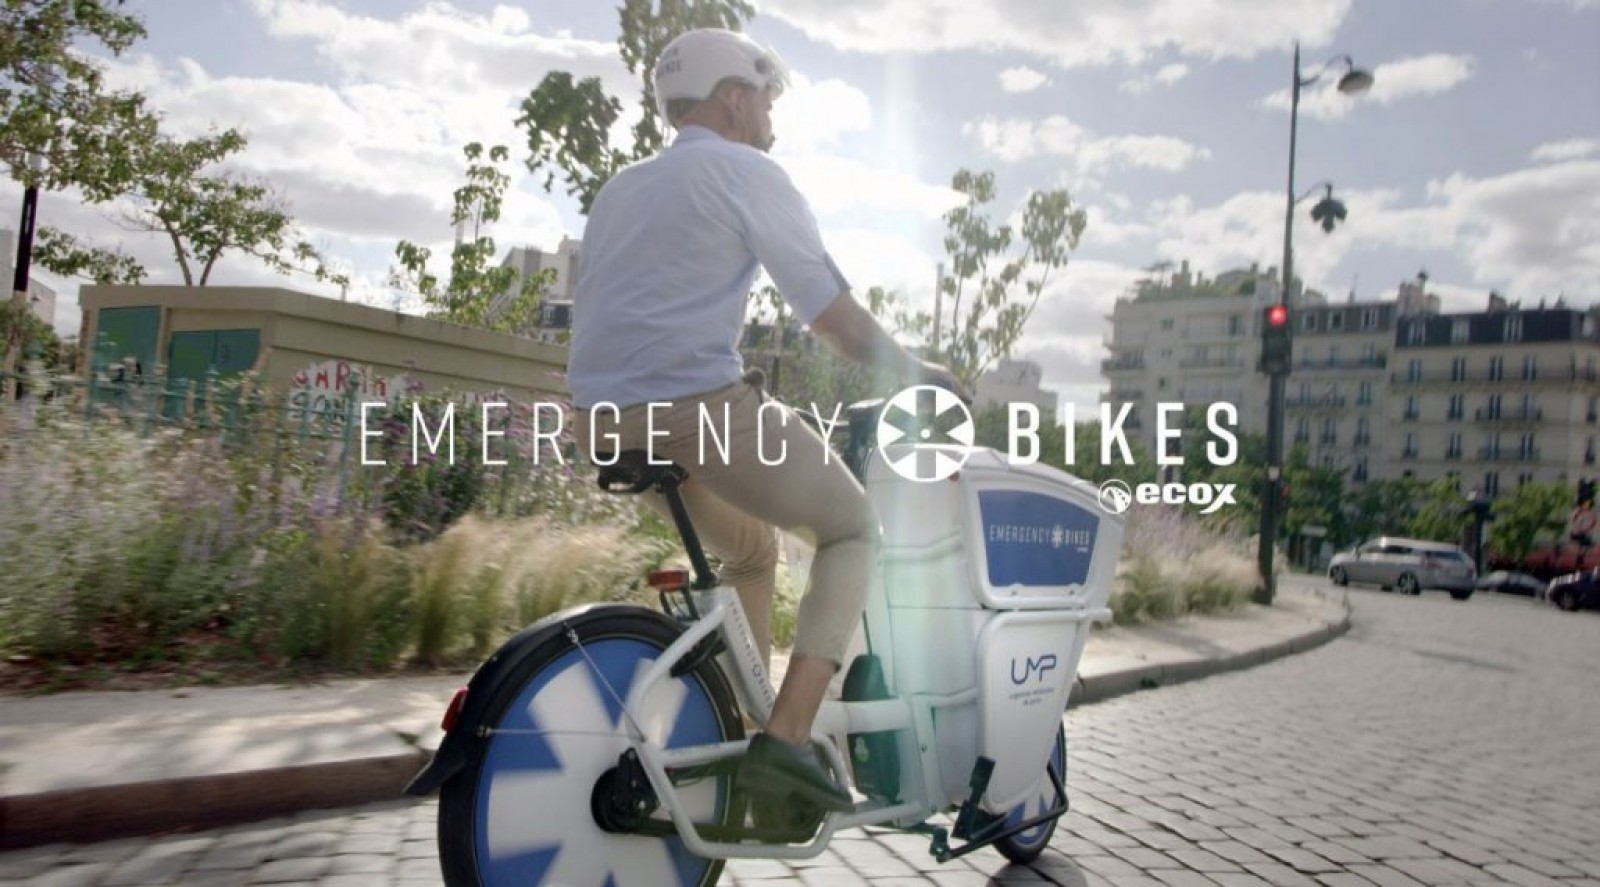 emergency-bike-paris/